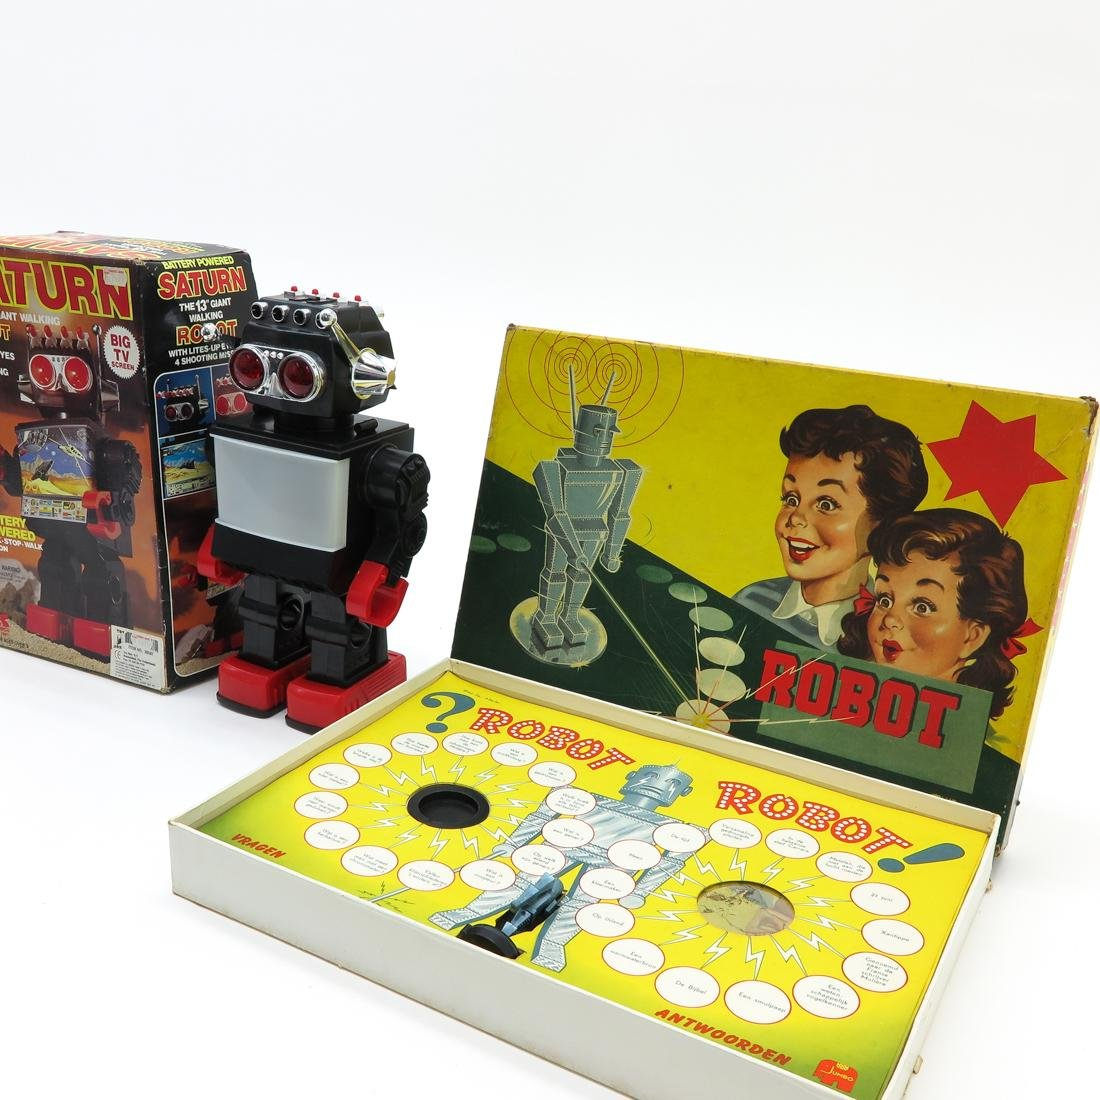 Saturn Giant Walking Robot and Robot Board Game - 3